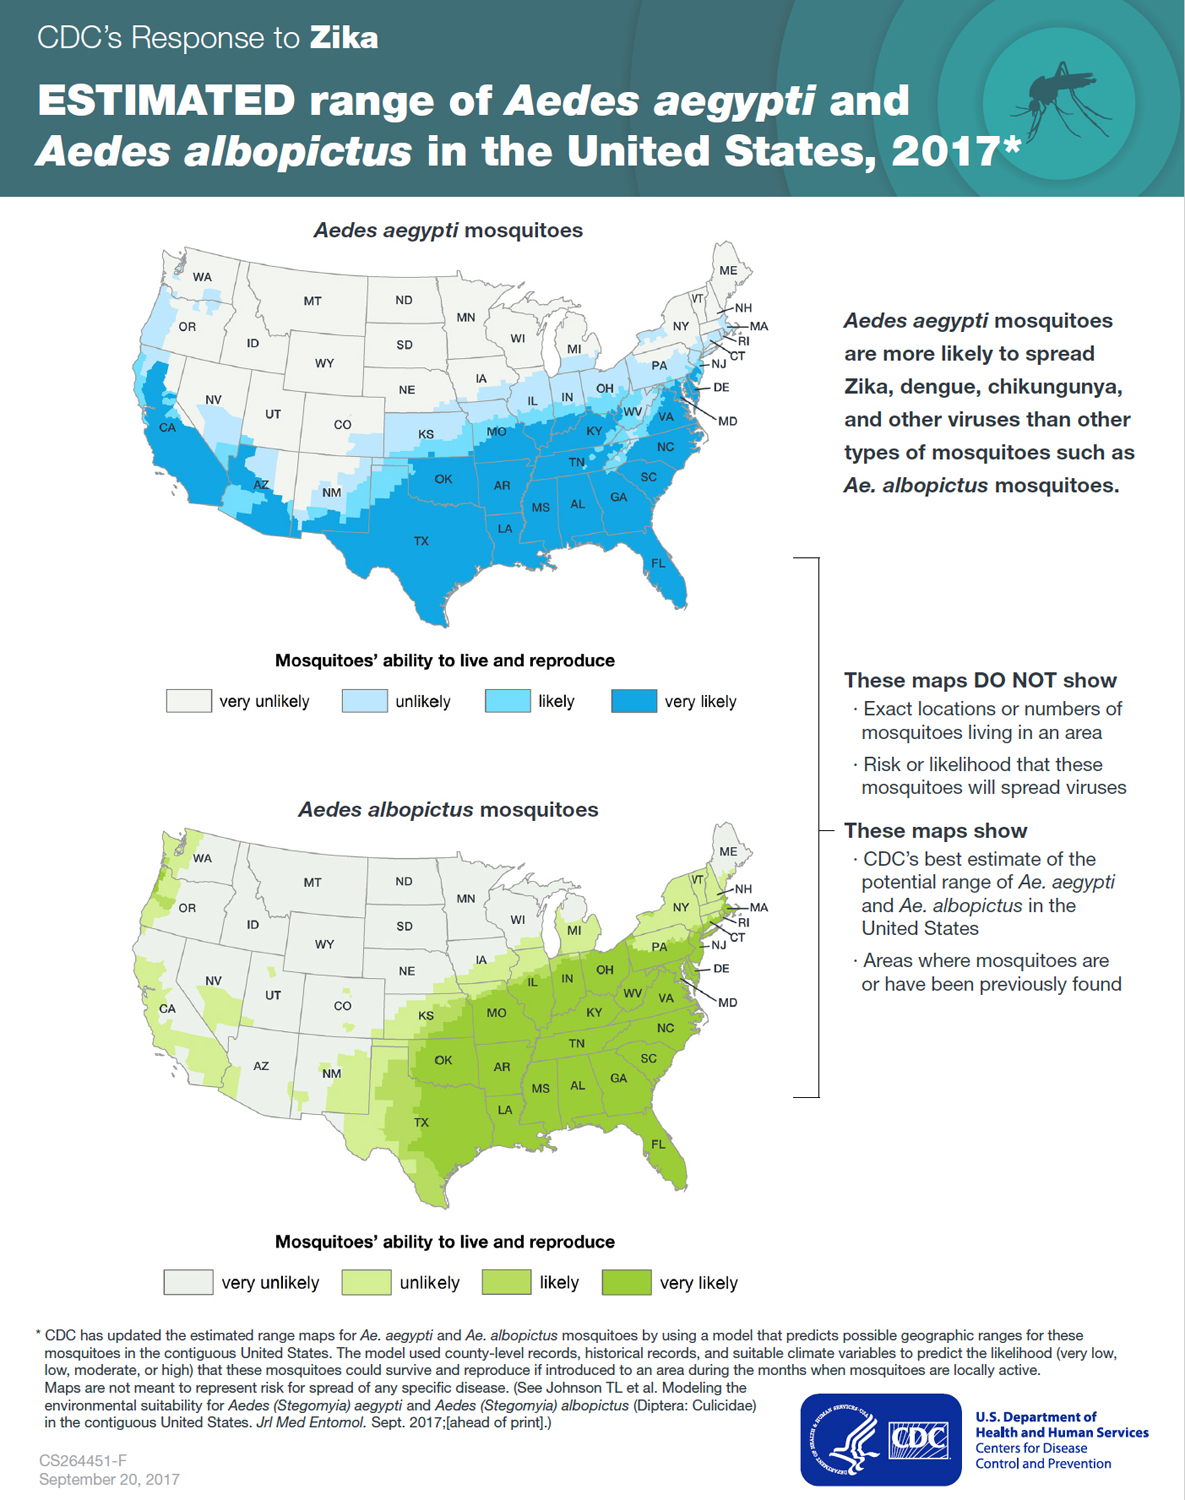 Graphic: Estimated range of Aedes aegypti and Aedes albopictus in the United States, 2016*